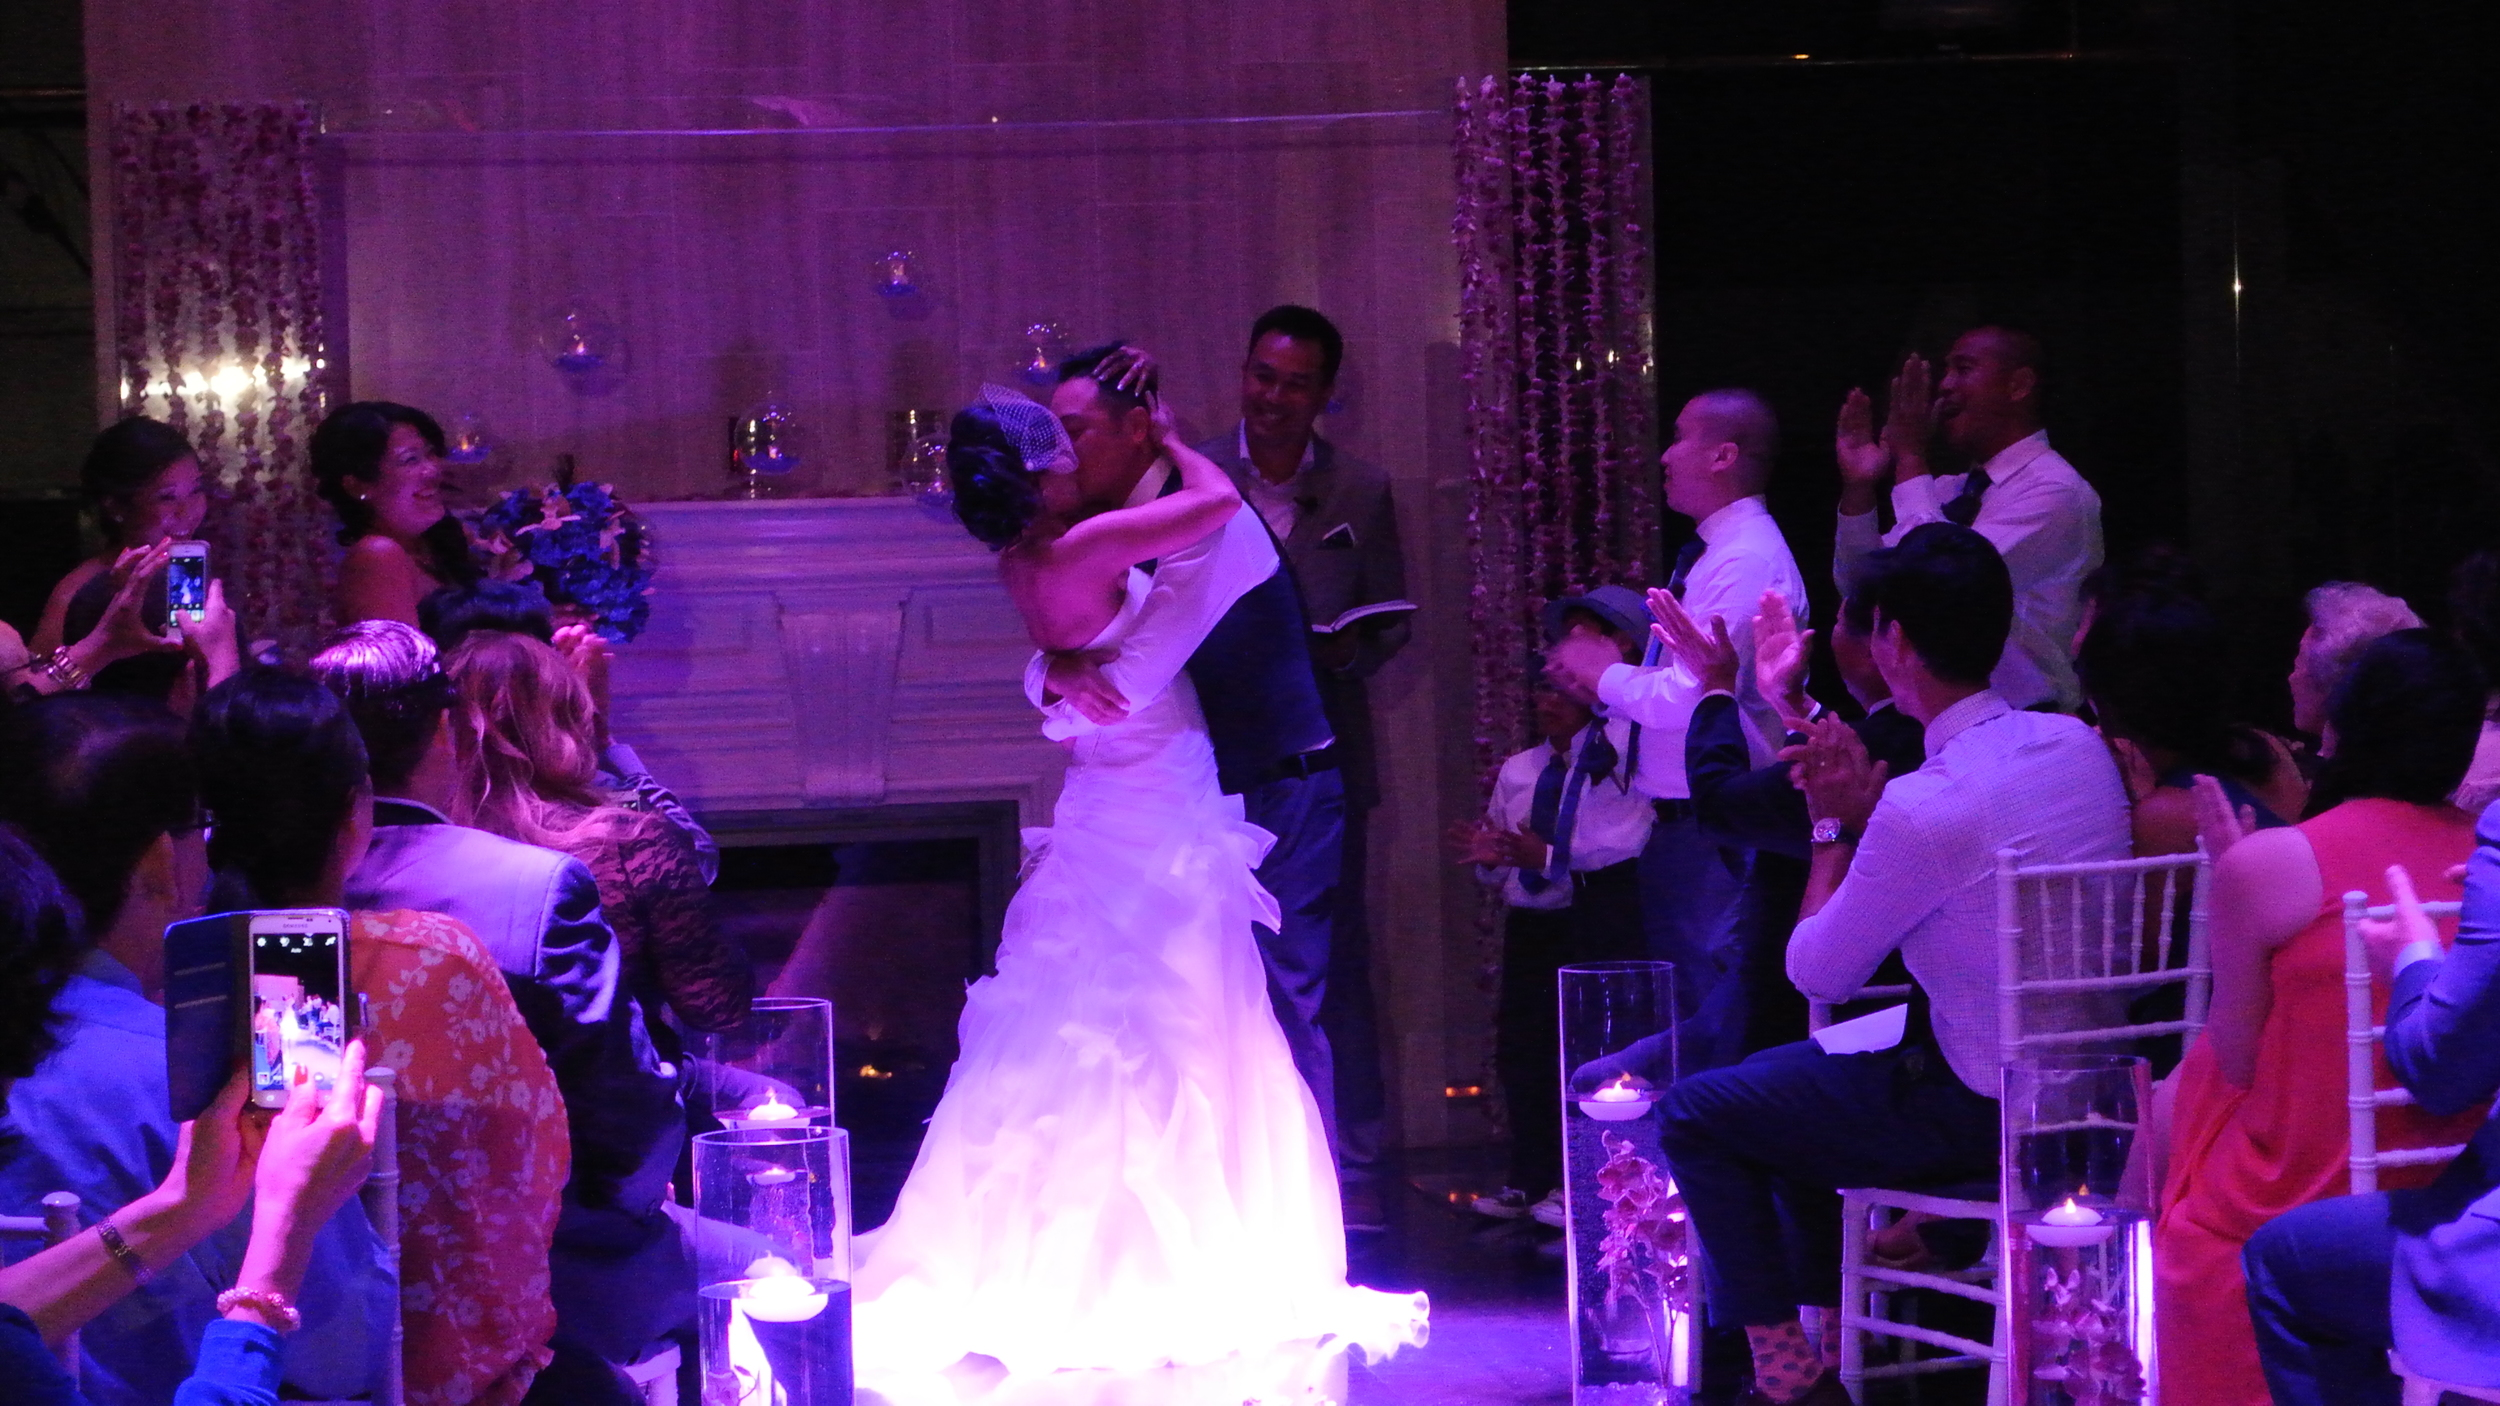 The first kiss!  Check out the guest taking a photo in the bottom left!  We made an announcement asking that they please be discrete so that the professionals could get the best shots, and after seeing a sneak peek of the photographer's pics, I know it was worth it!  Photo by Las Vegas Wedding Planner Andrea Eppolito.